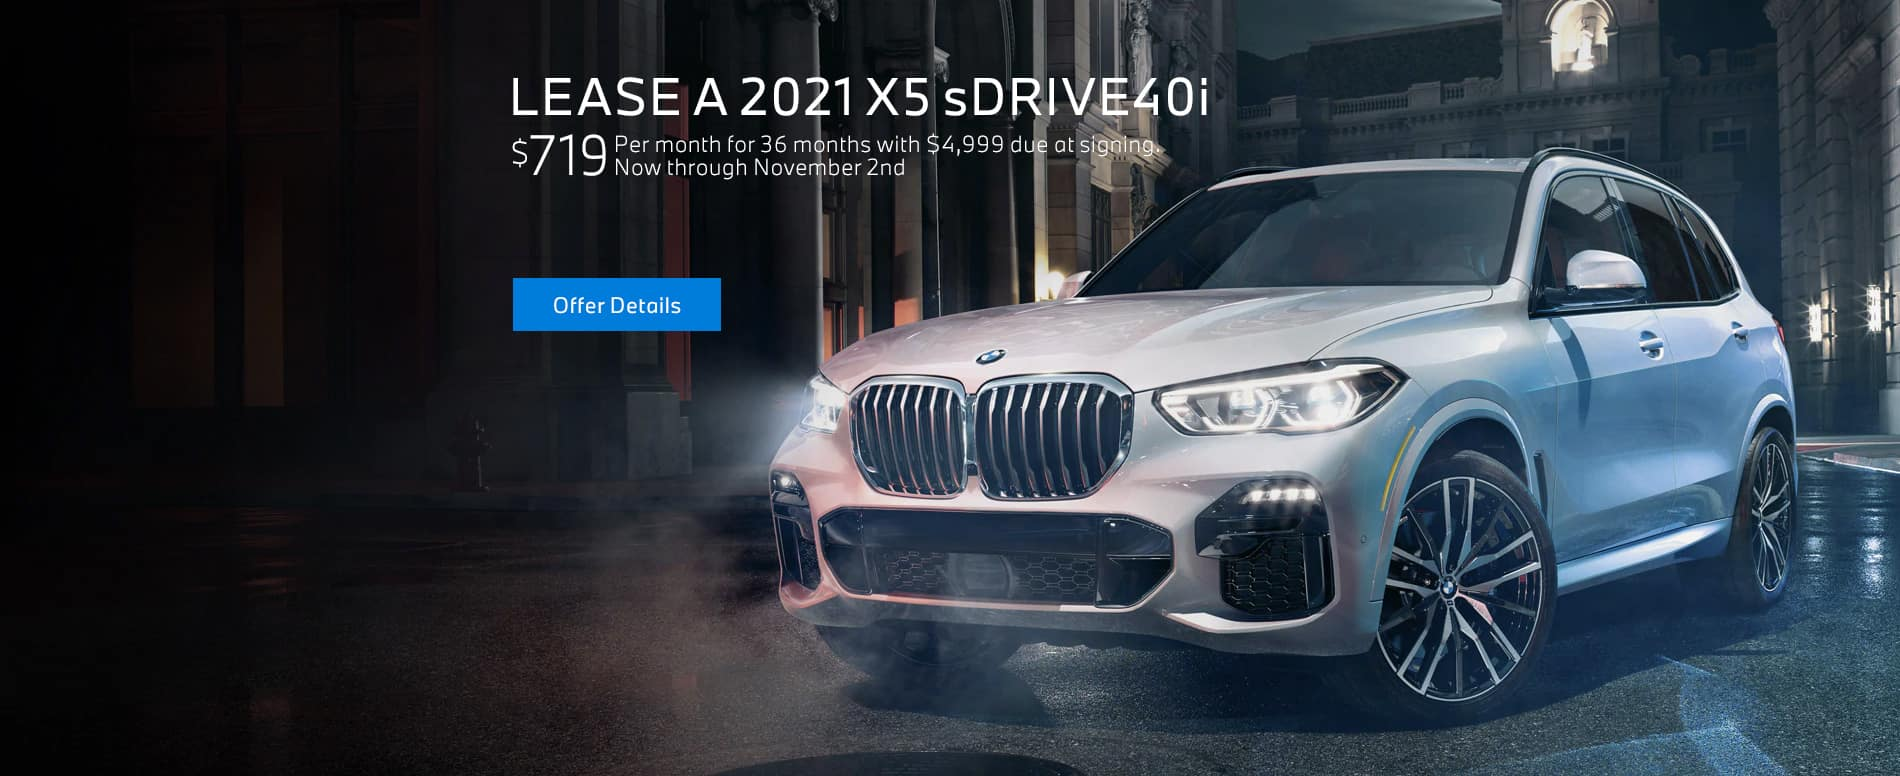 Lease a 2021 BMW X5 sDRIVE40i for $719/mo at BMW of Fort Walton Beach